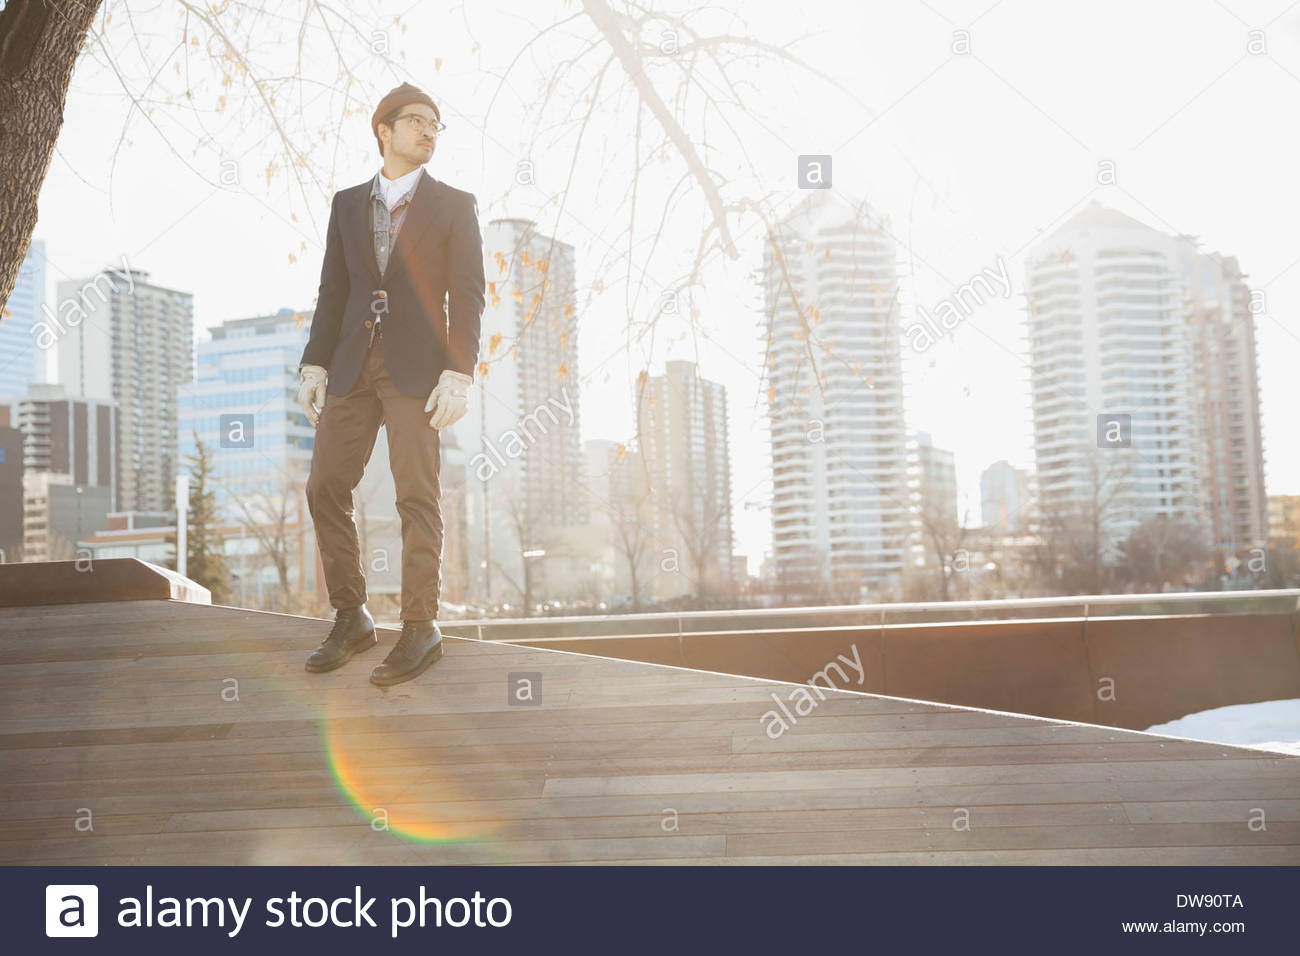 Man standing on wooden slope against cityscape - Stock Image